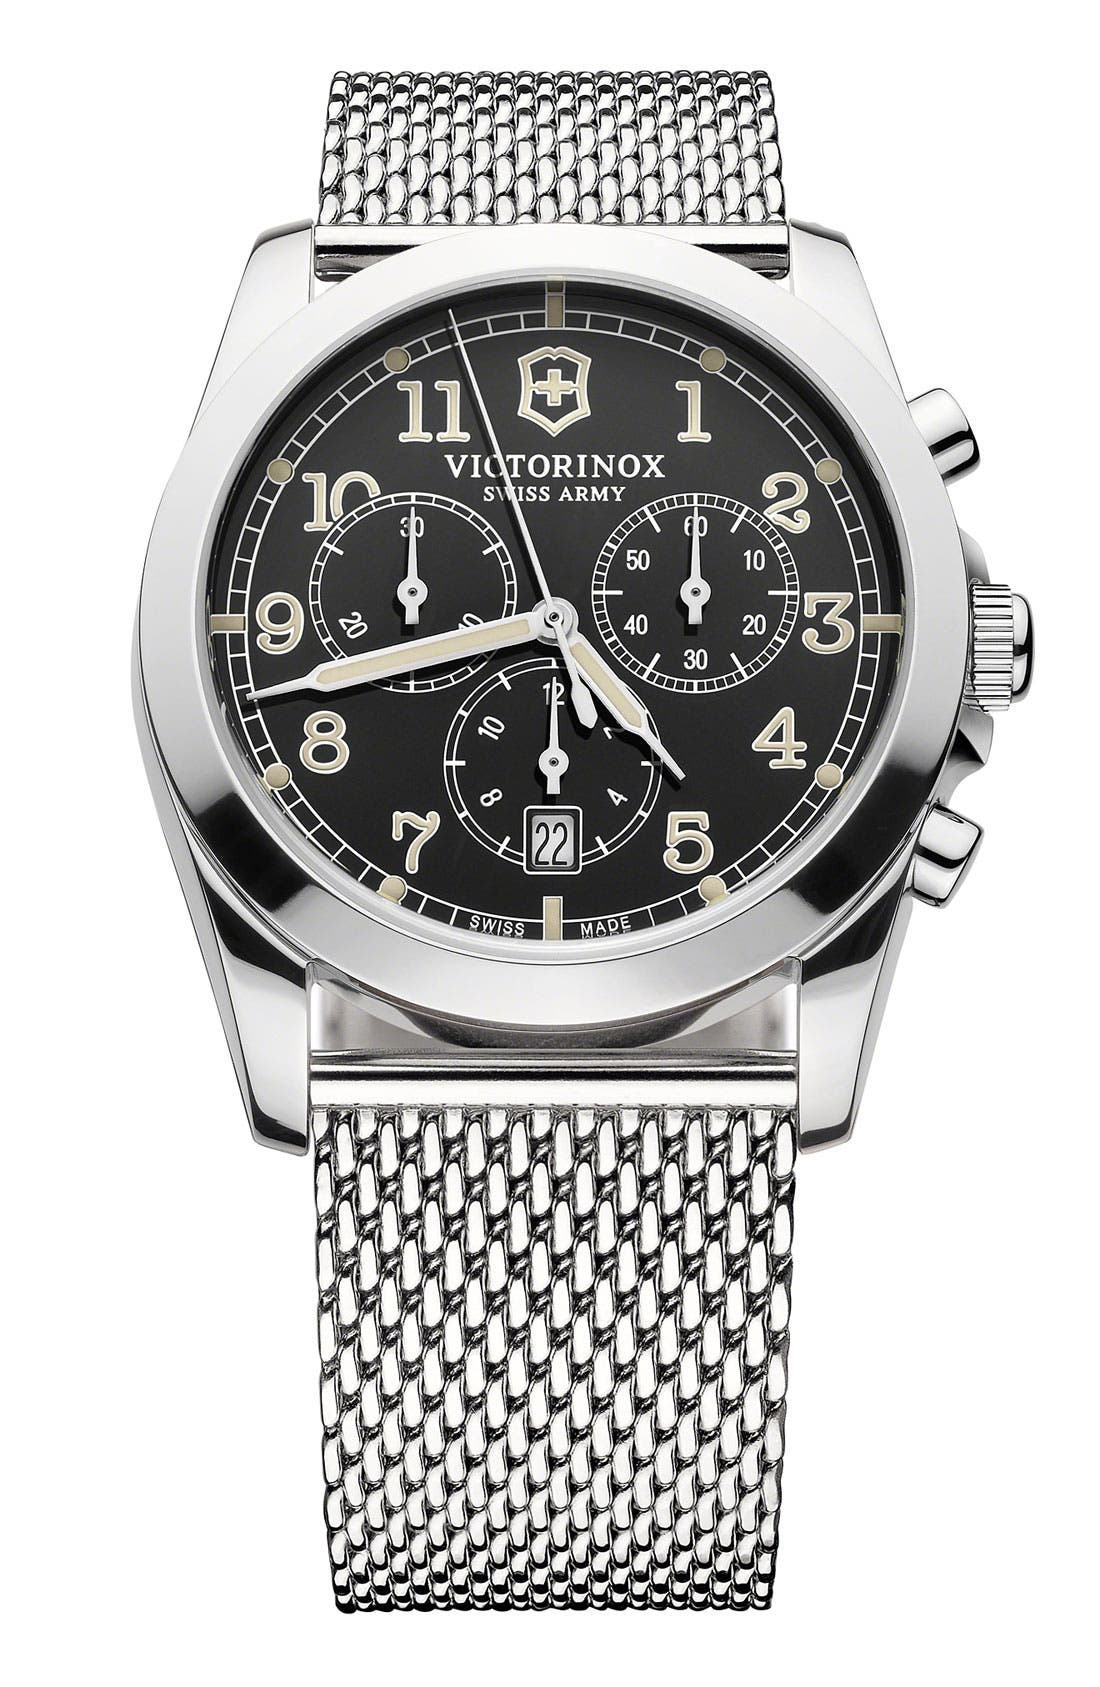 Alternate Image 1 Selected - Victorinox Swiss Army® 'Infantry' Chronograph Watch